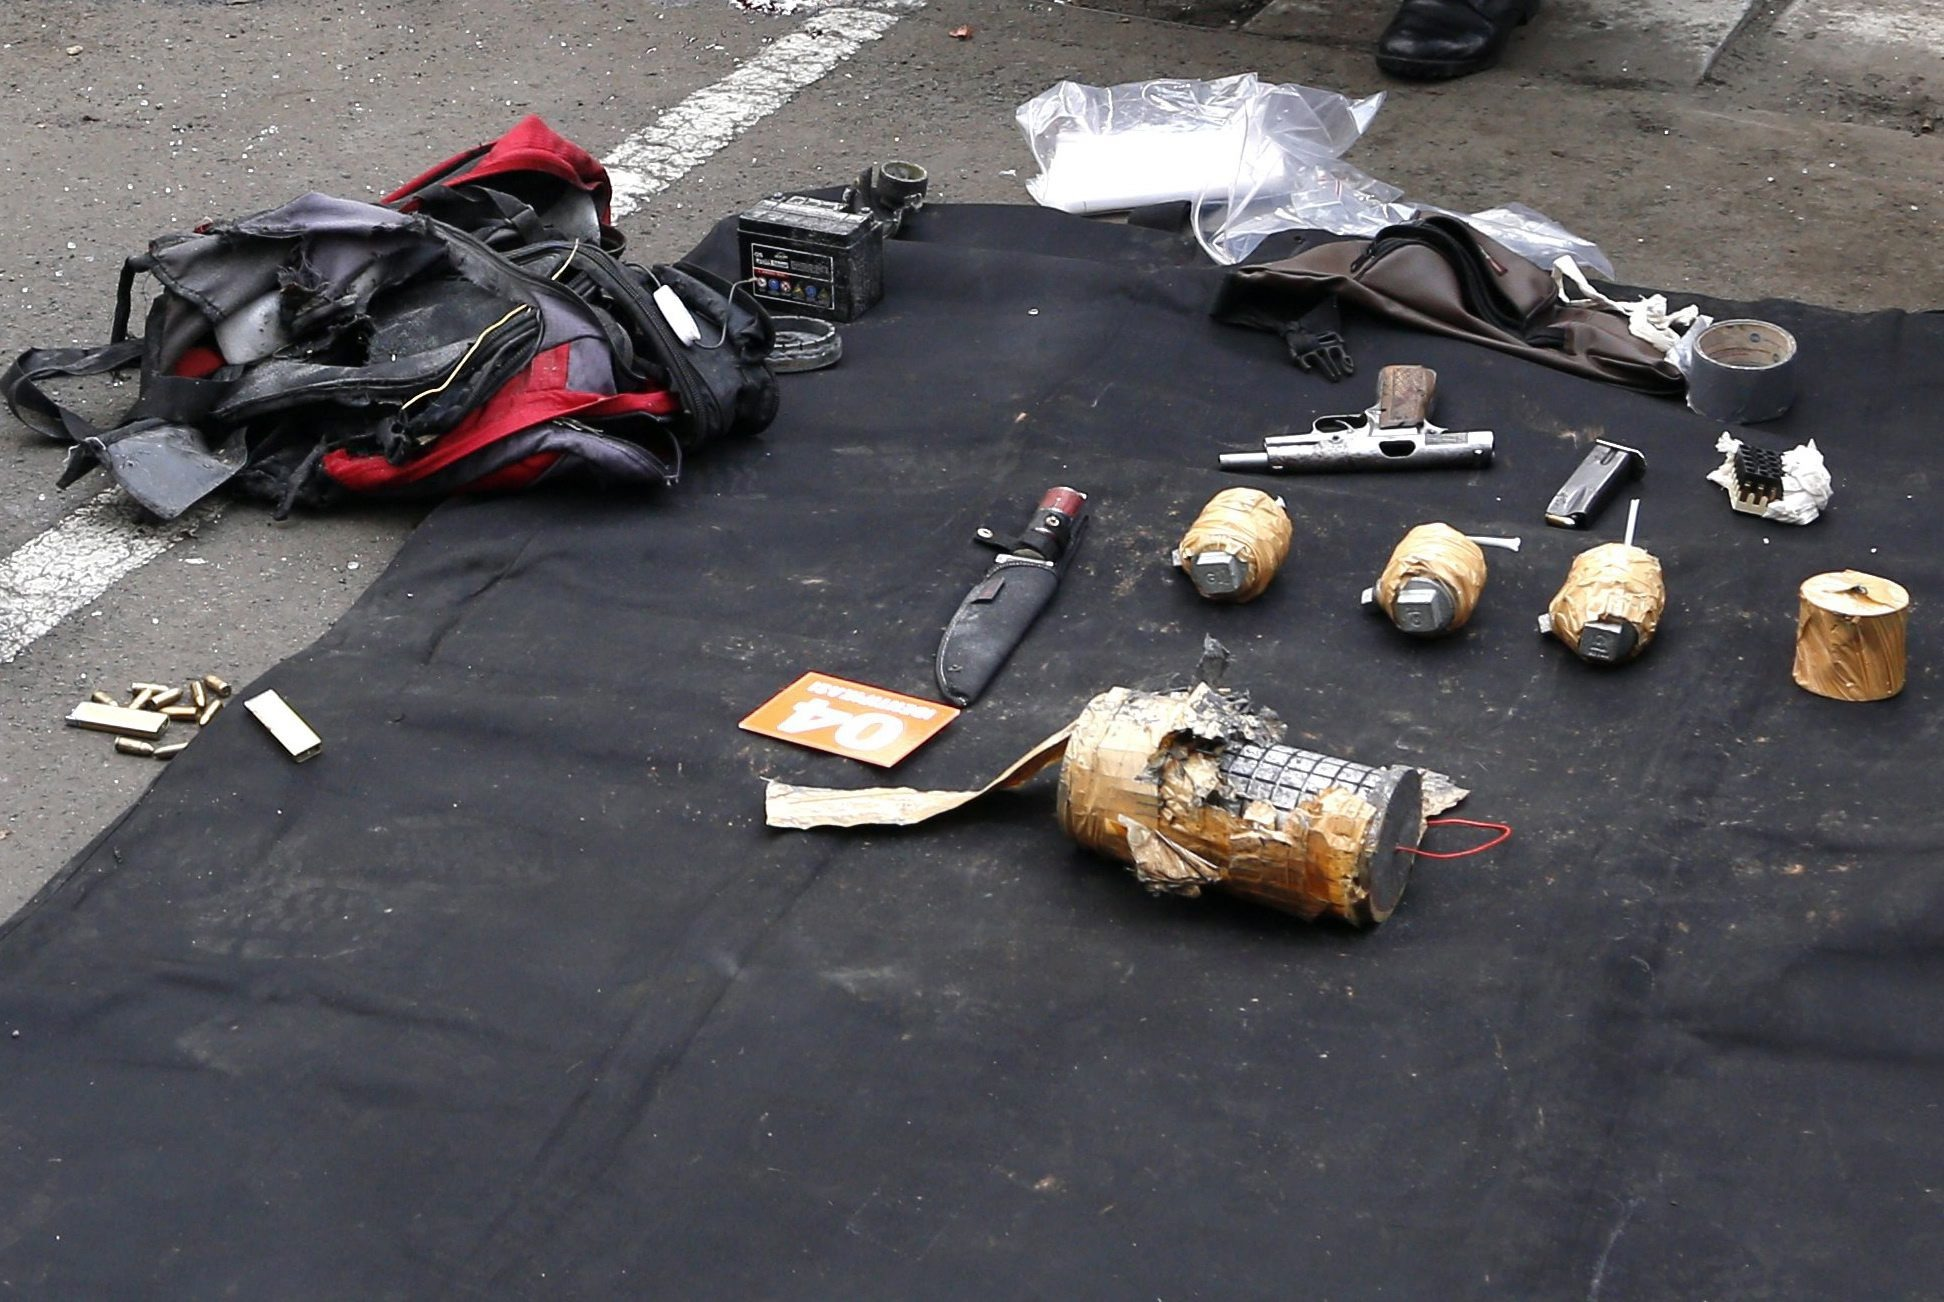 The weapons arsenal suspected terrorists were carrying after a bomb blast in front of a shopping mall in Jakarta yesterday. Photo: EPA